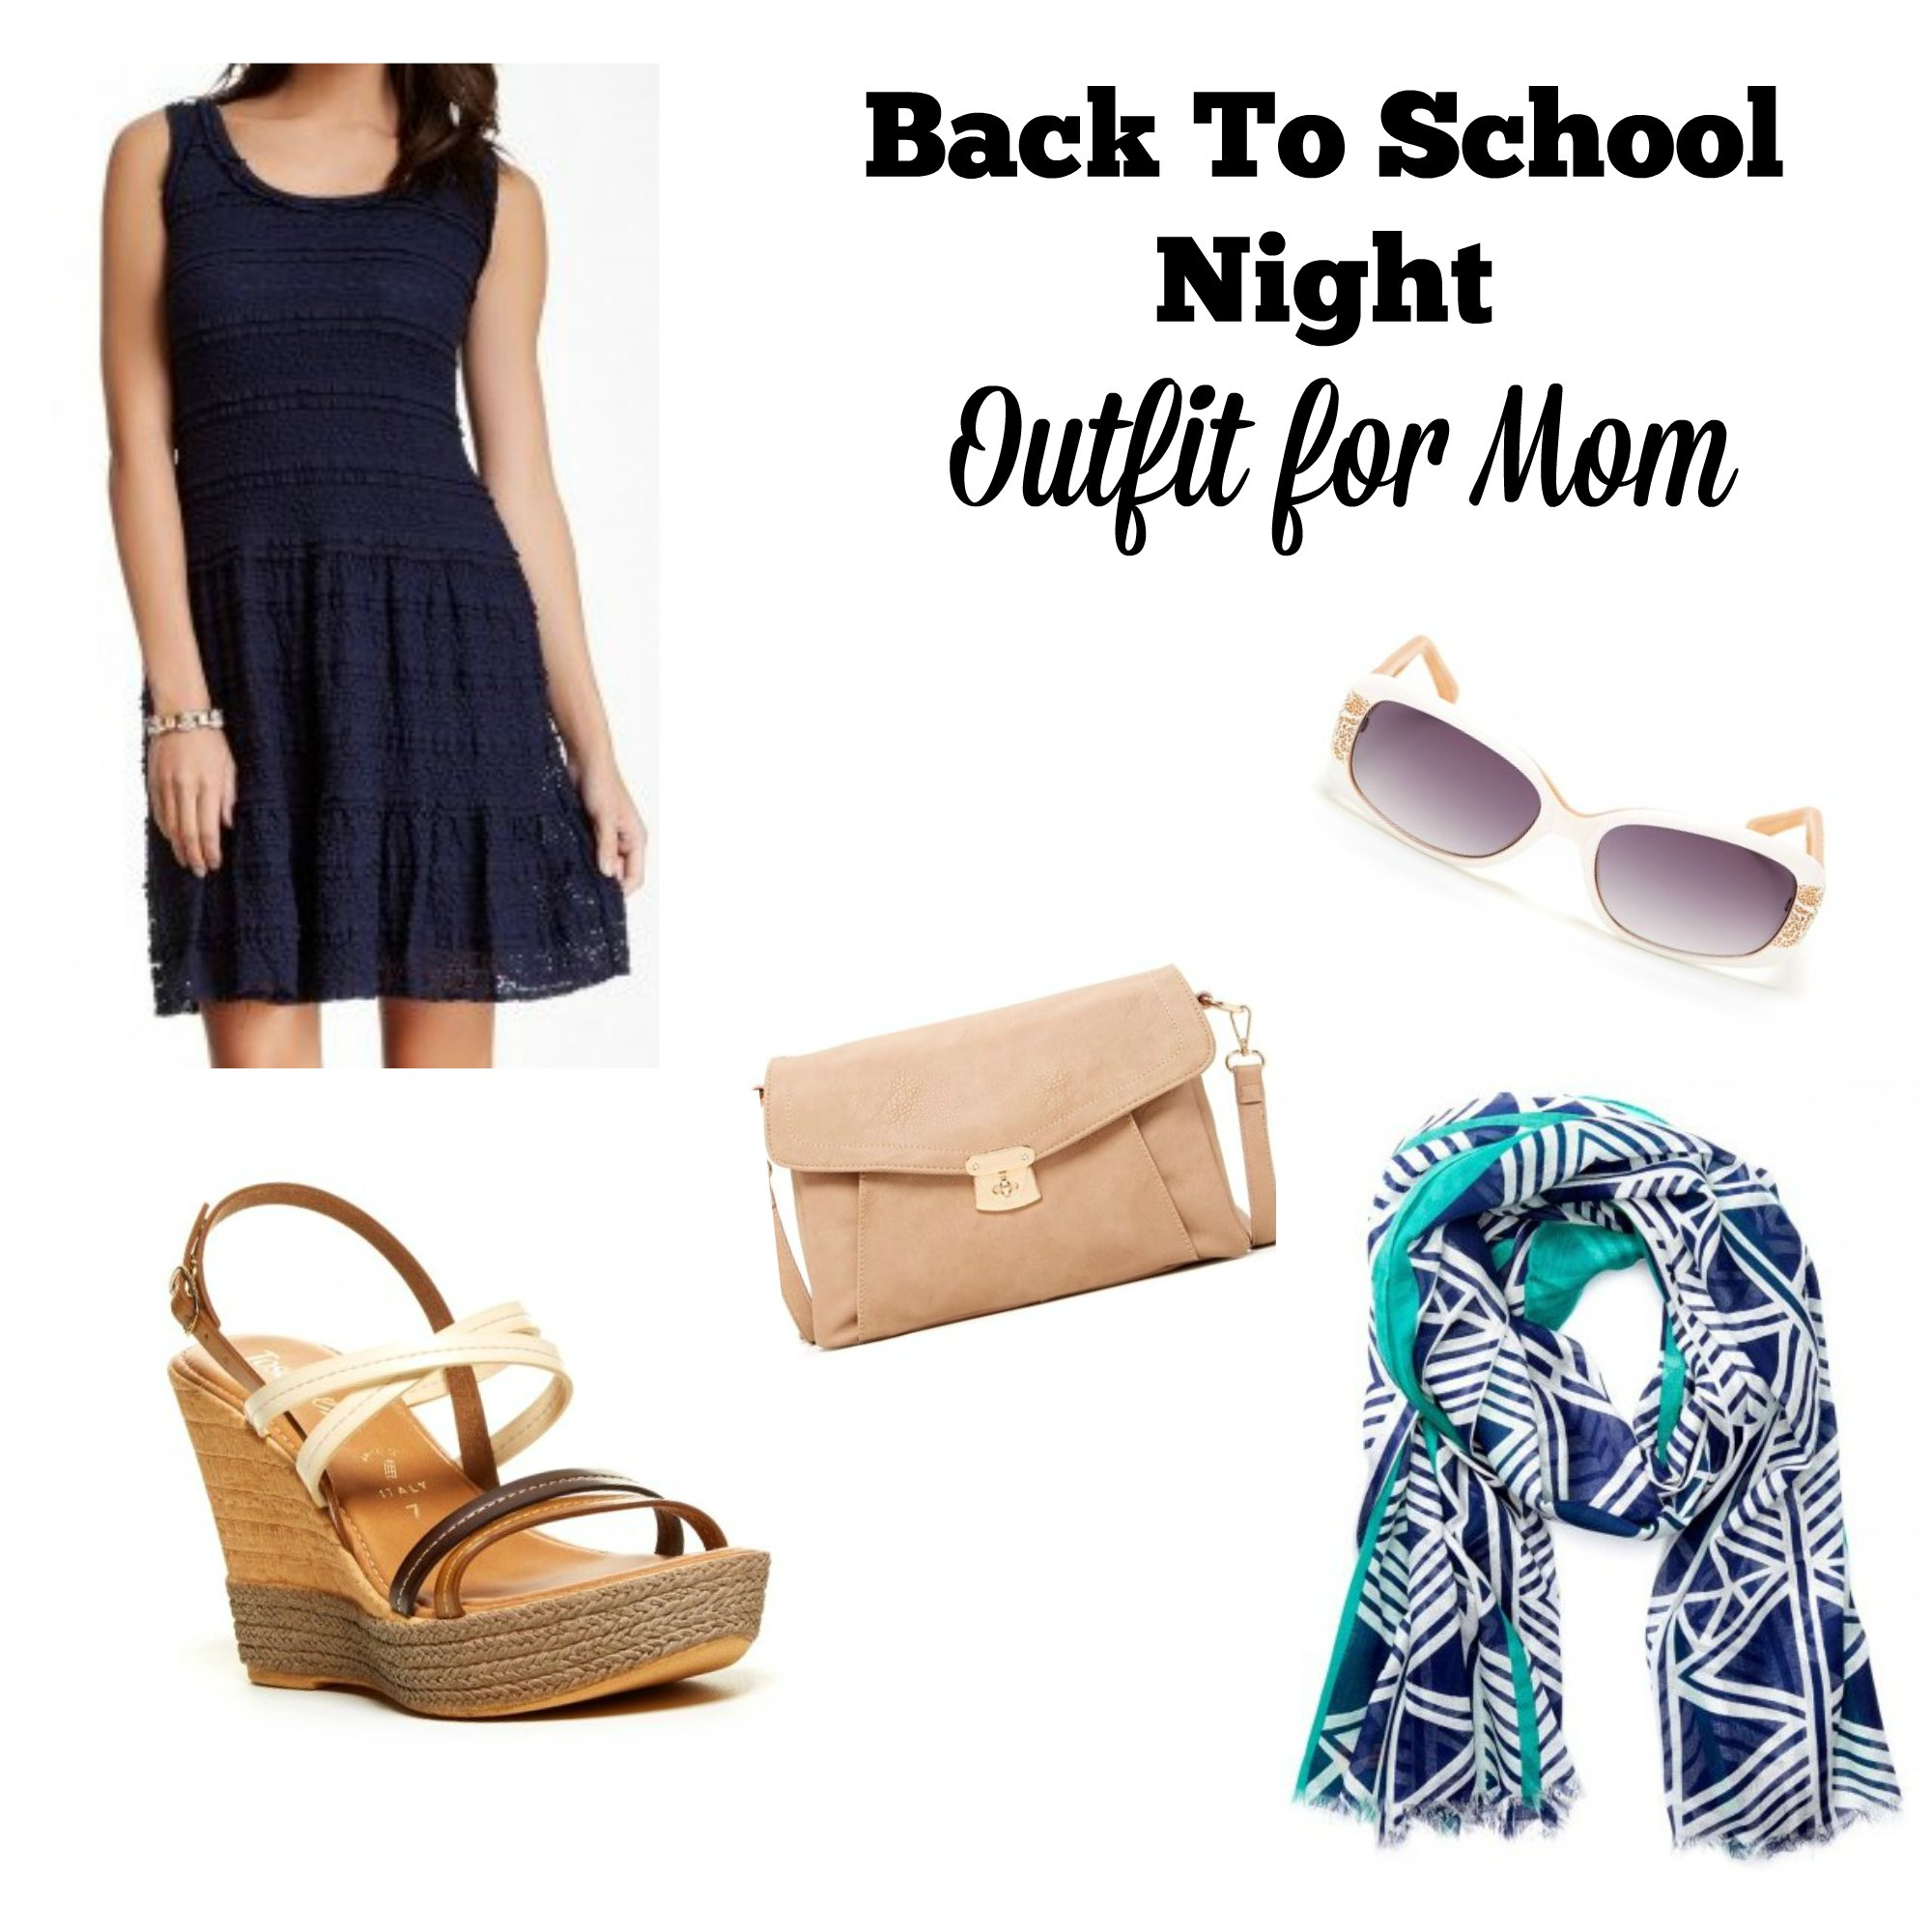 78cfd67dd80 Back To School Shopping With Nordstrom Rack – It s a Lovely Life!